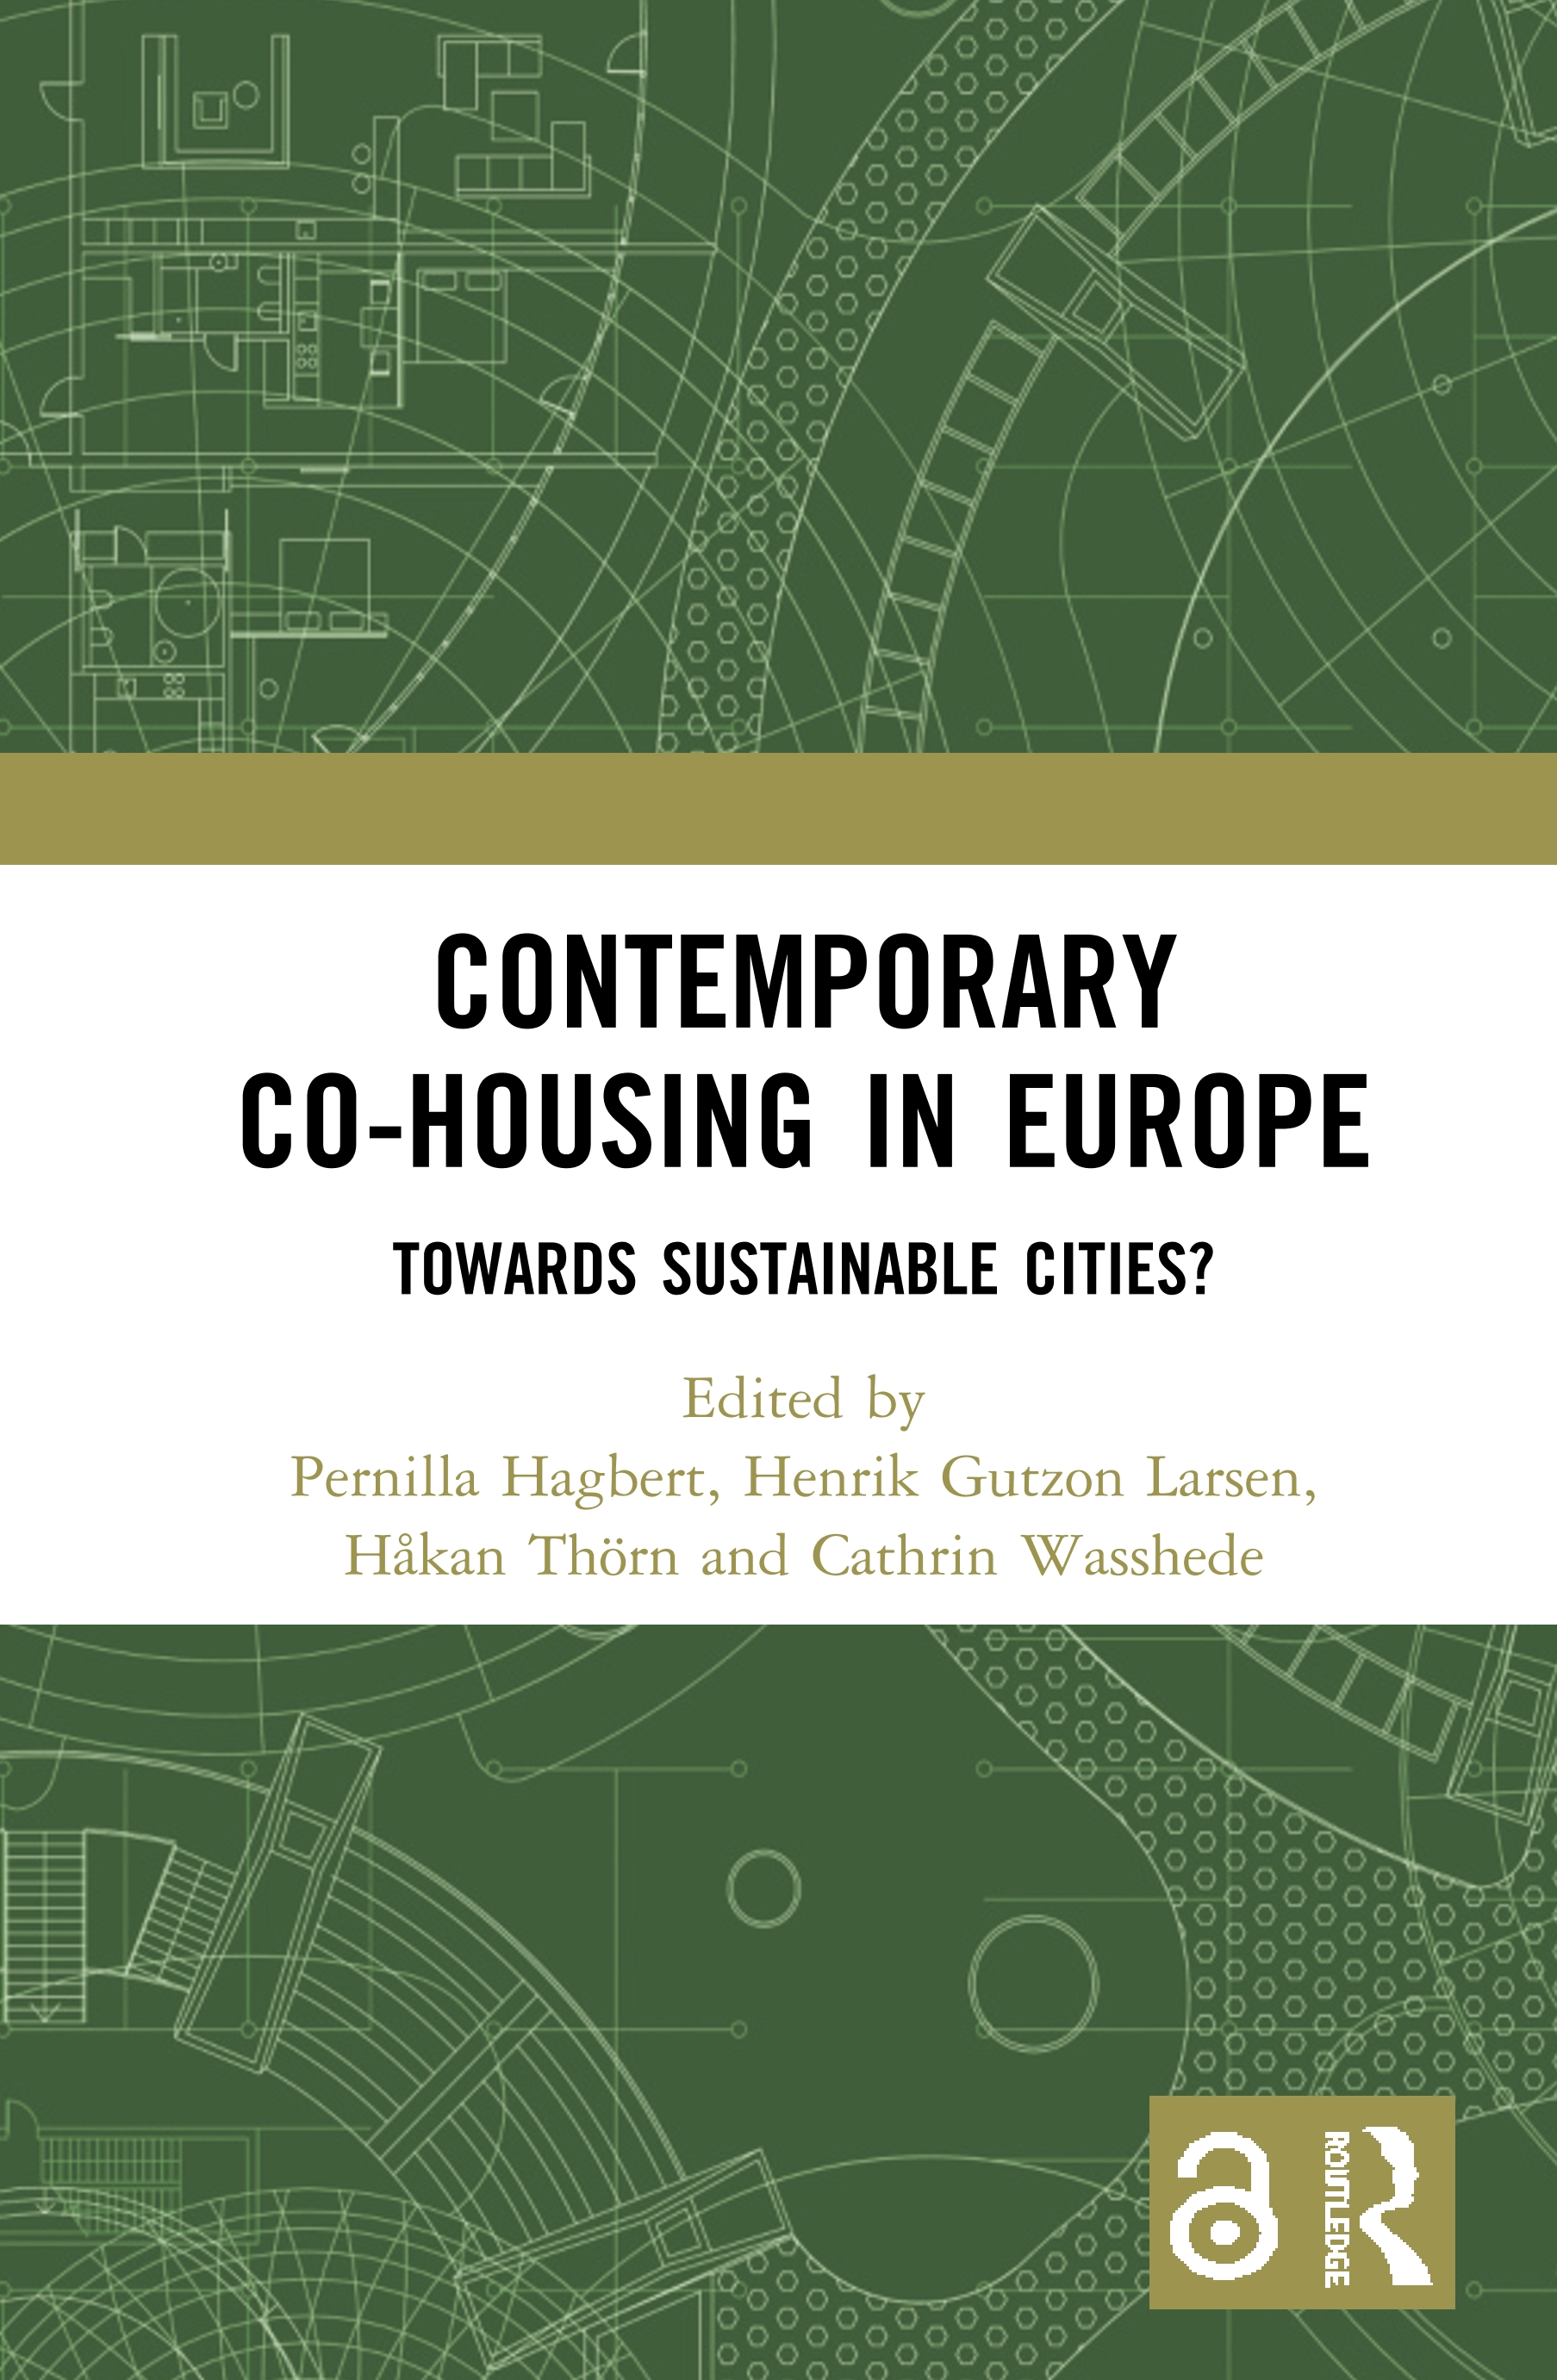 Contemporary Co-housing in Europe (Open Access): Towards Sustainable Cities? book cover